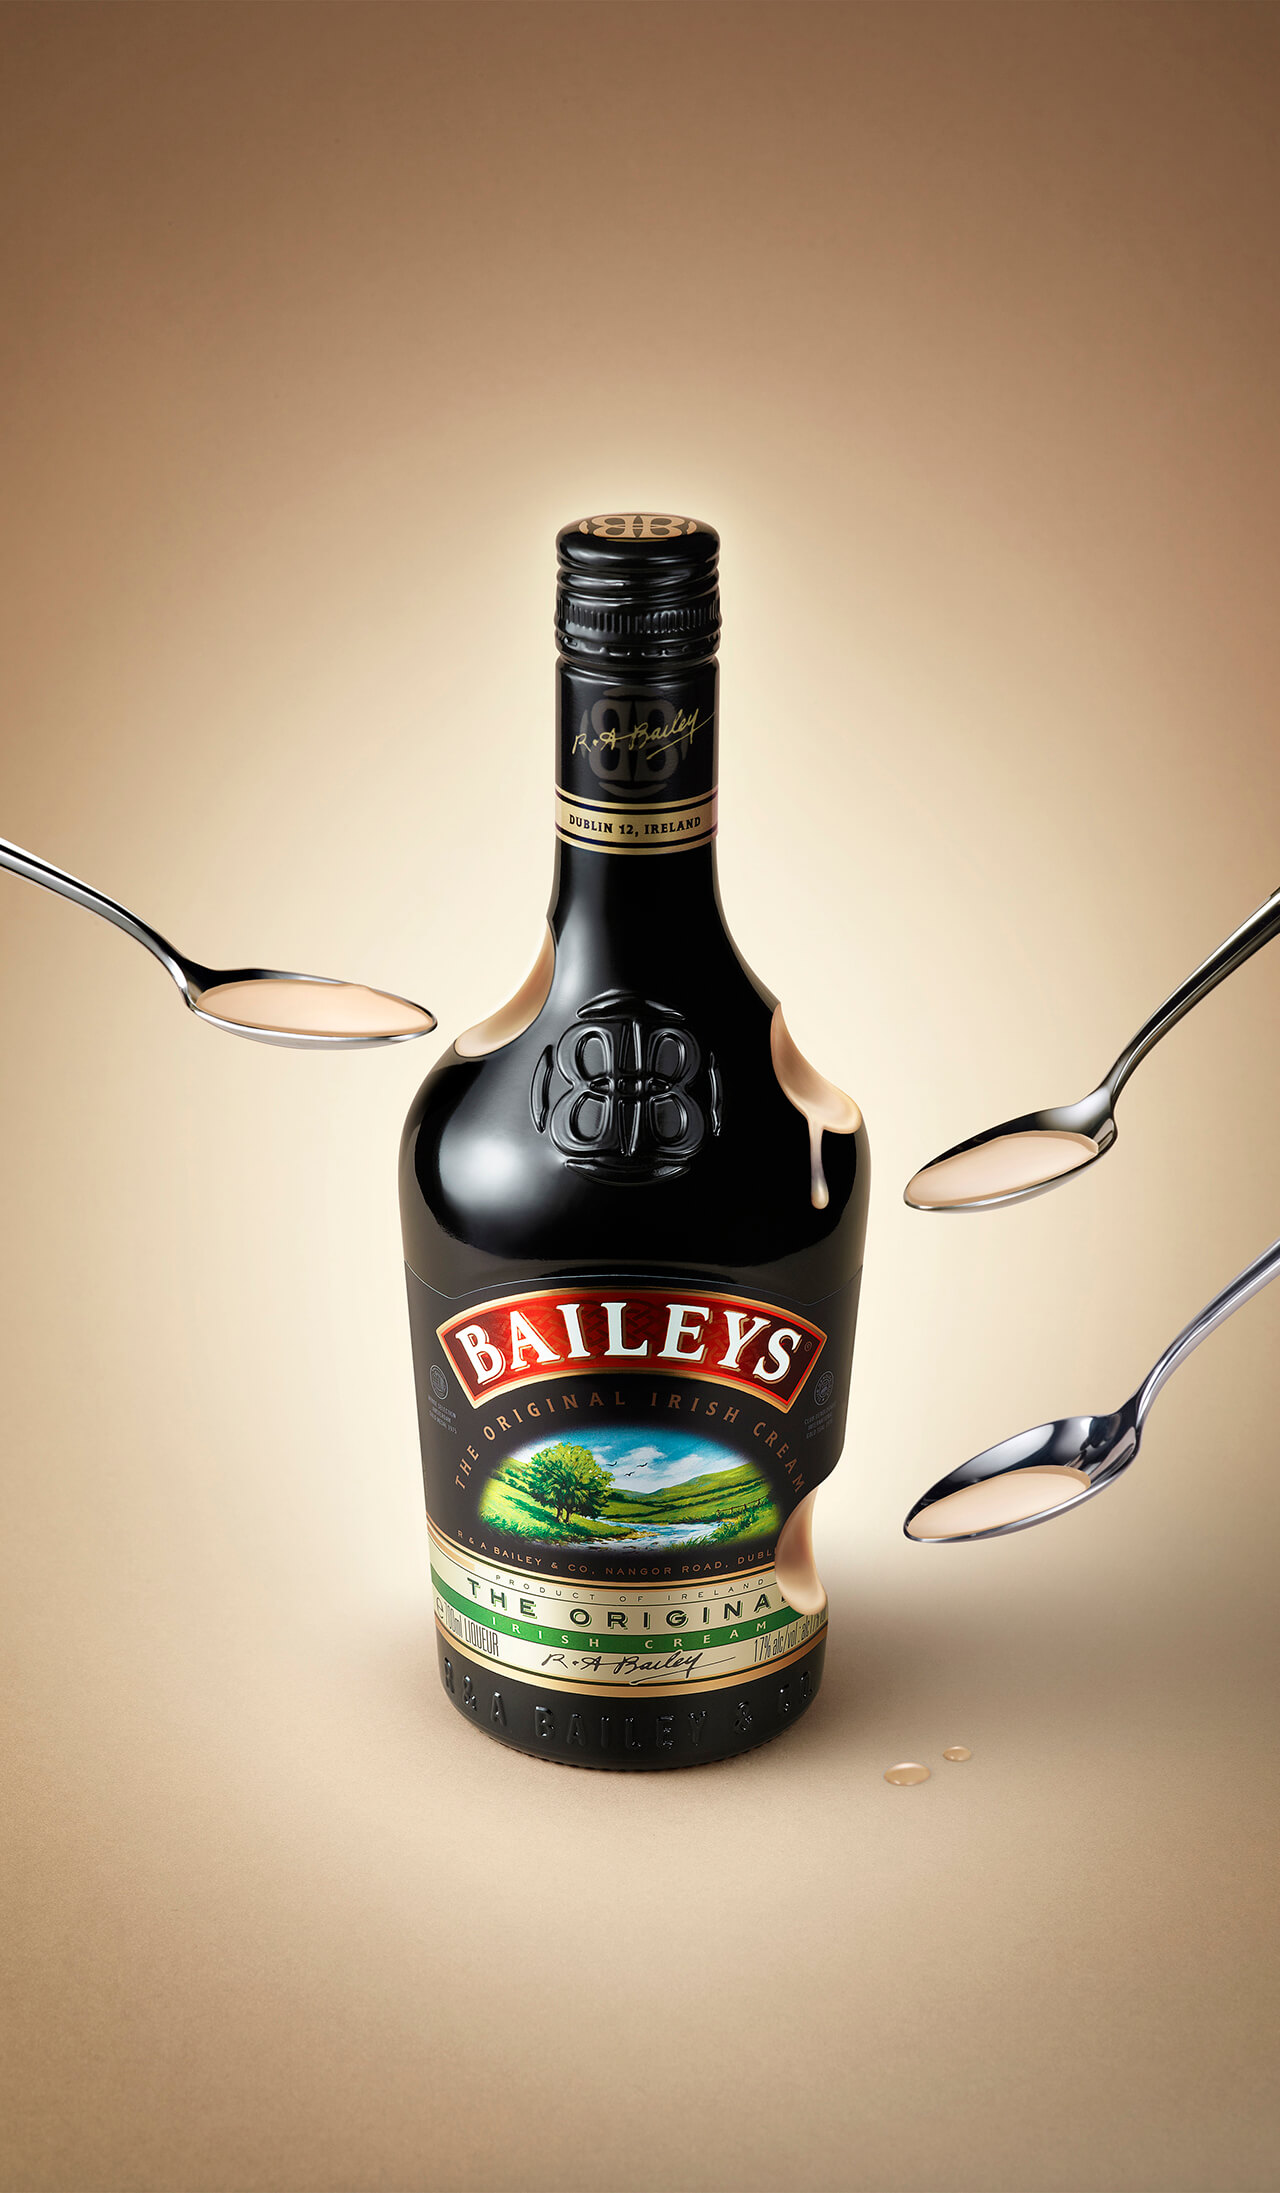 A Computer Generated Image of a Bottle Of Baileys Liquor with spoons scooping drink from the bottle